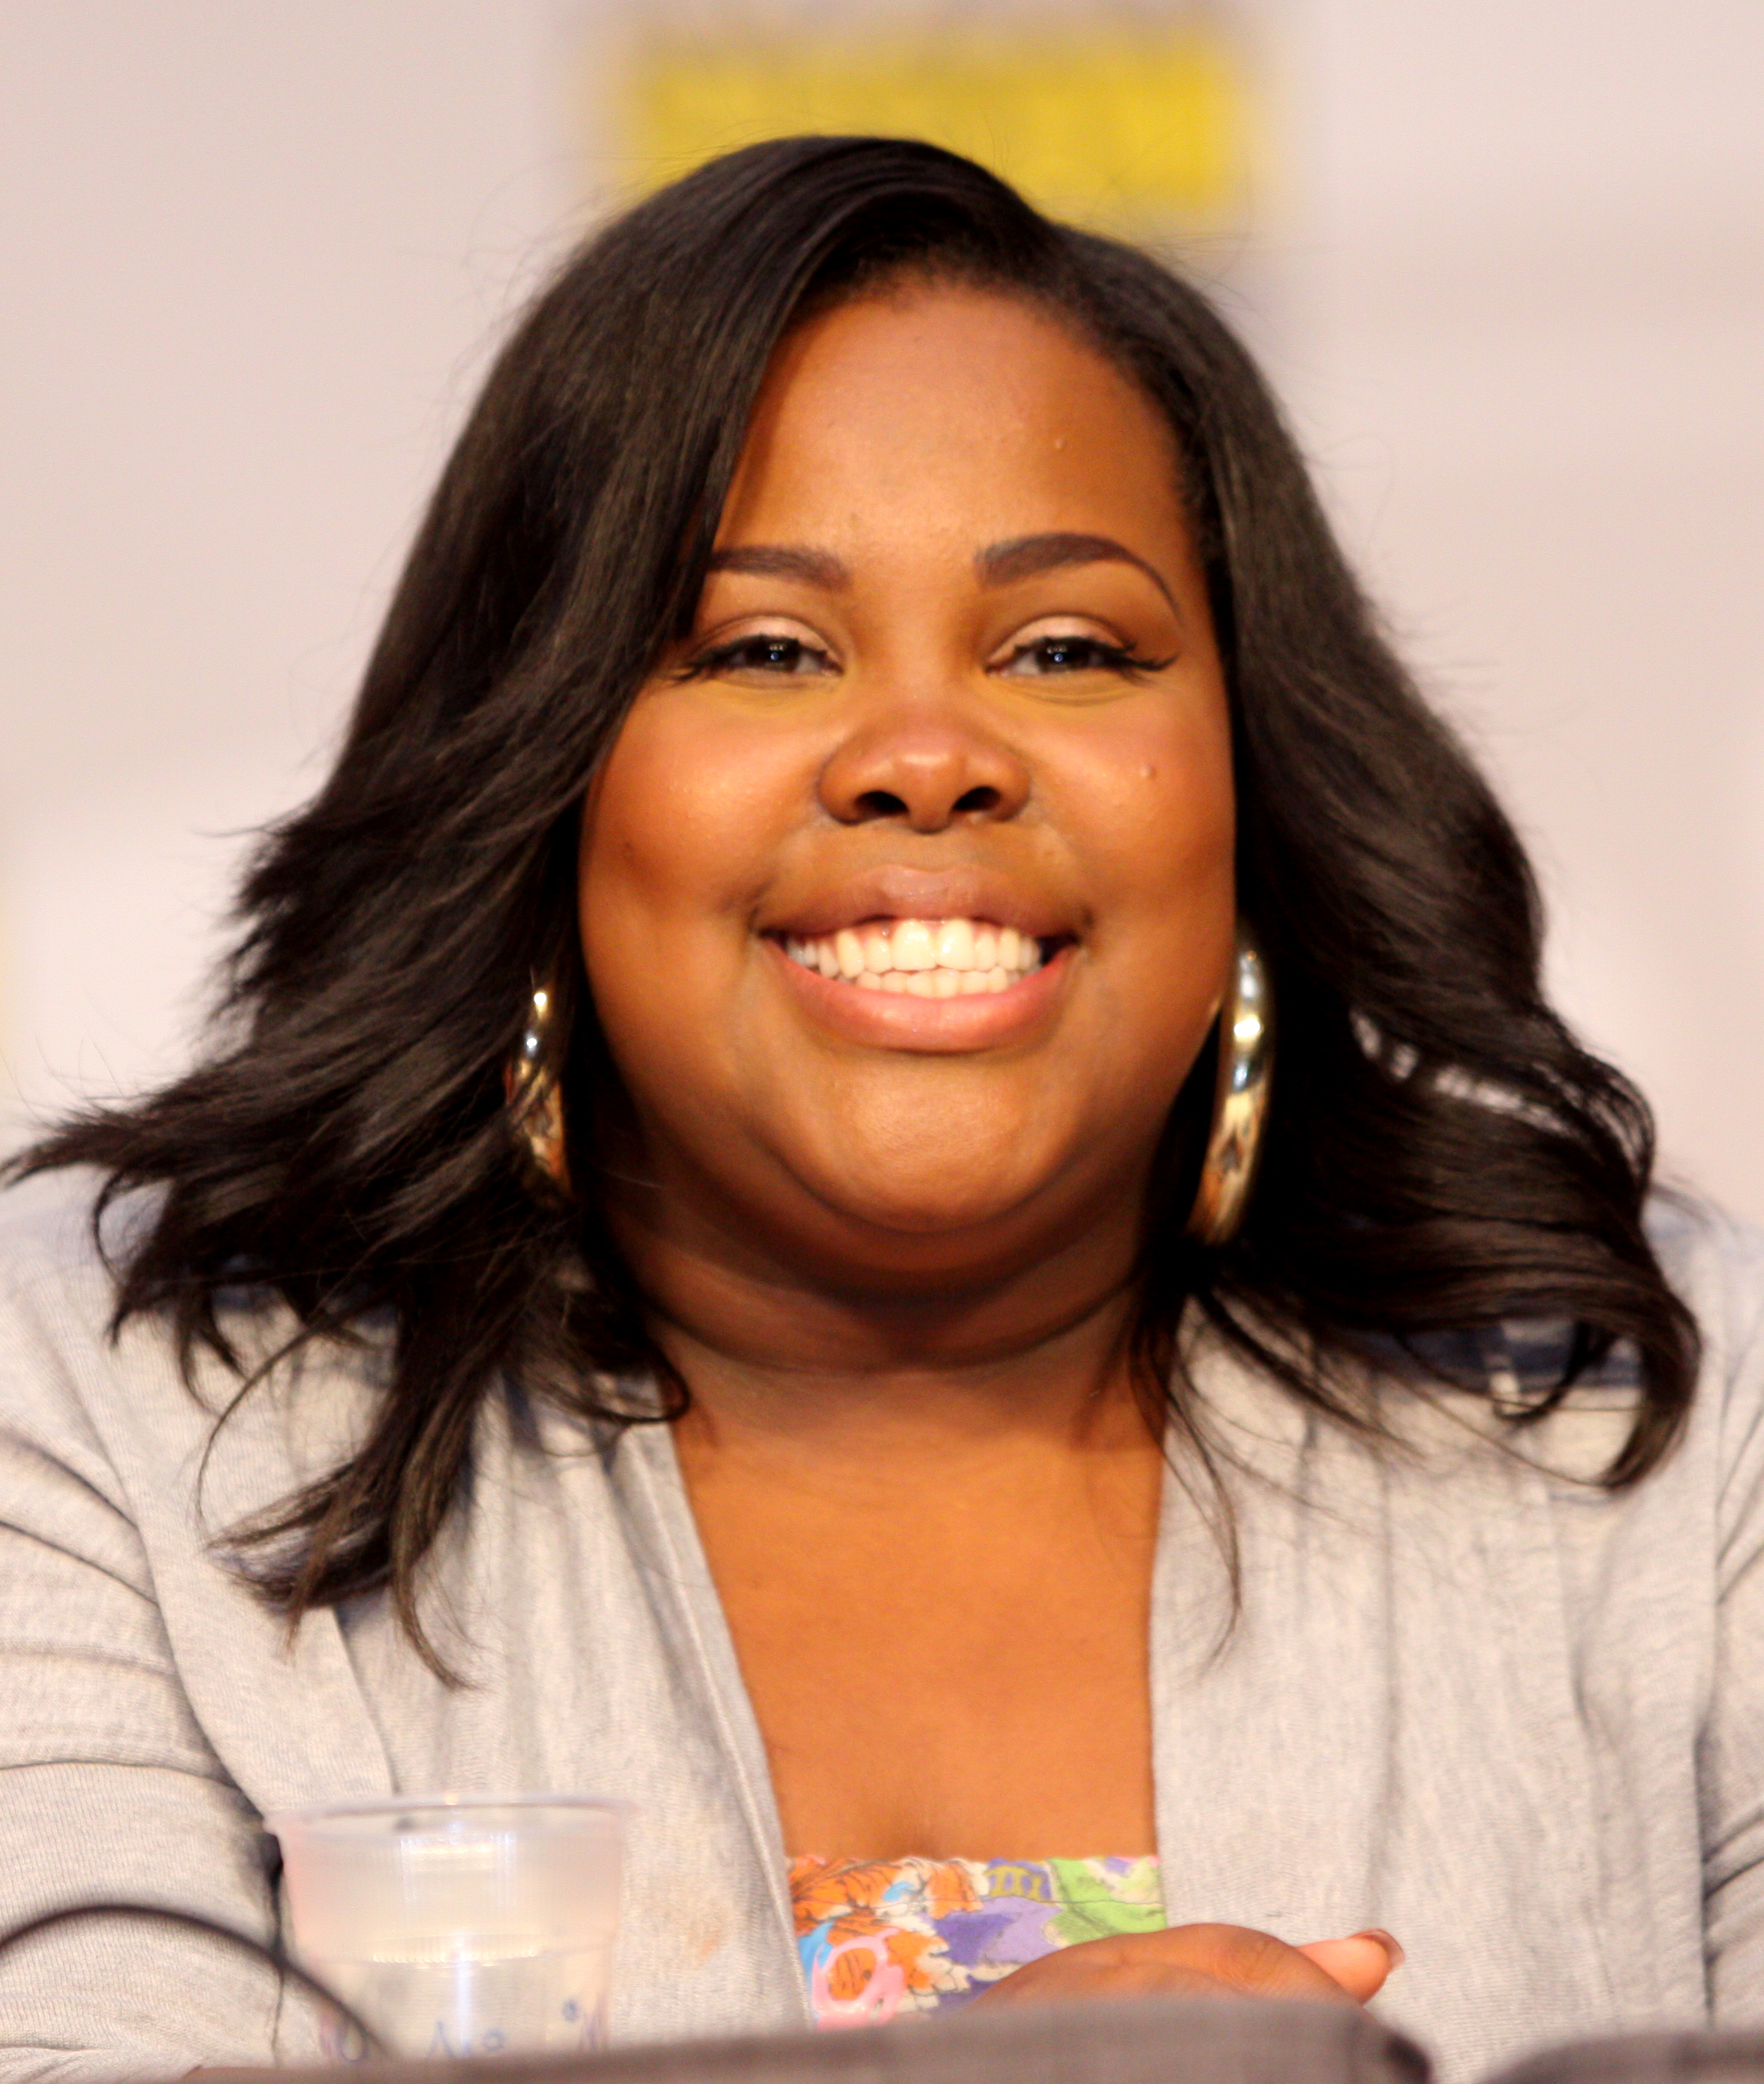 Amber Riley by Gage Skidmore - Amber_Riley_by_Gage_Skidmore